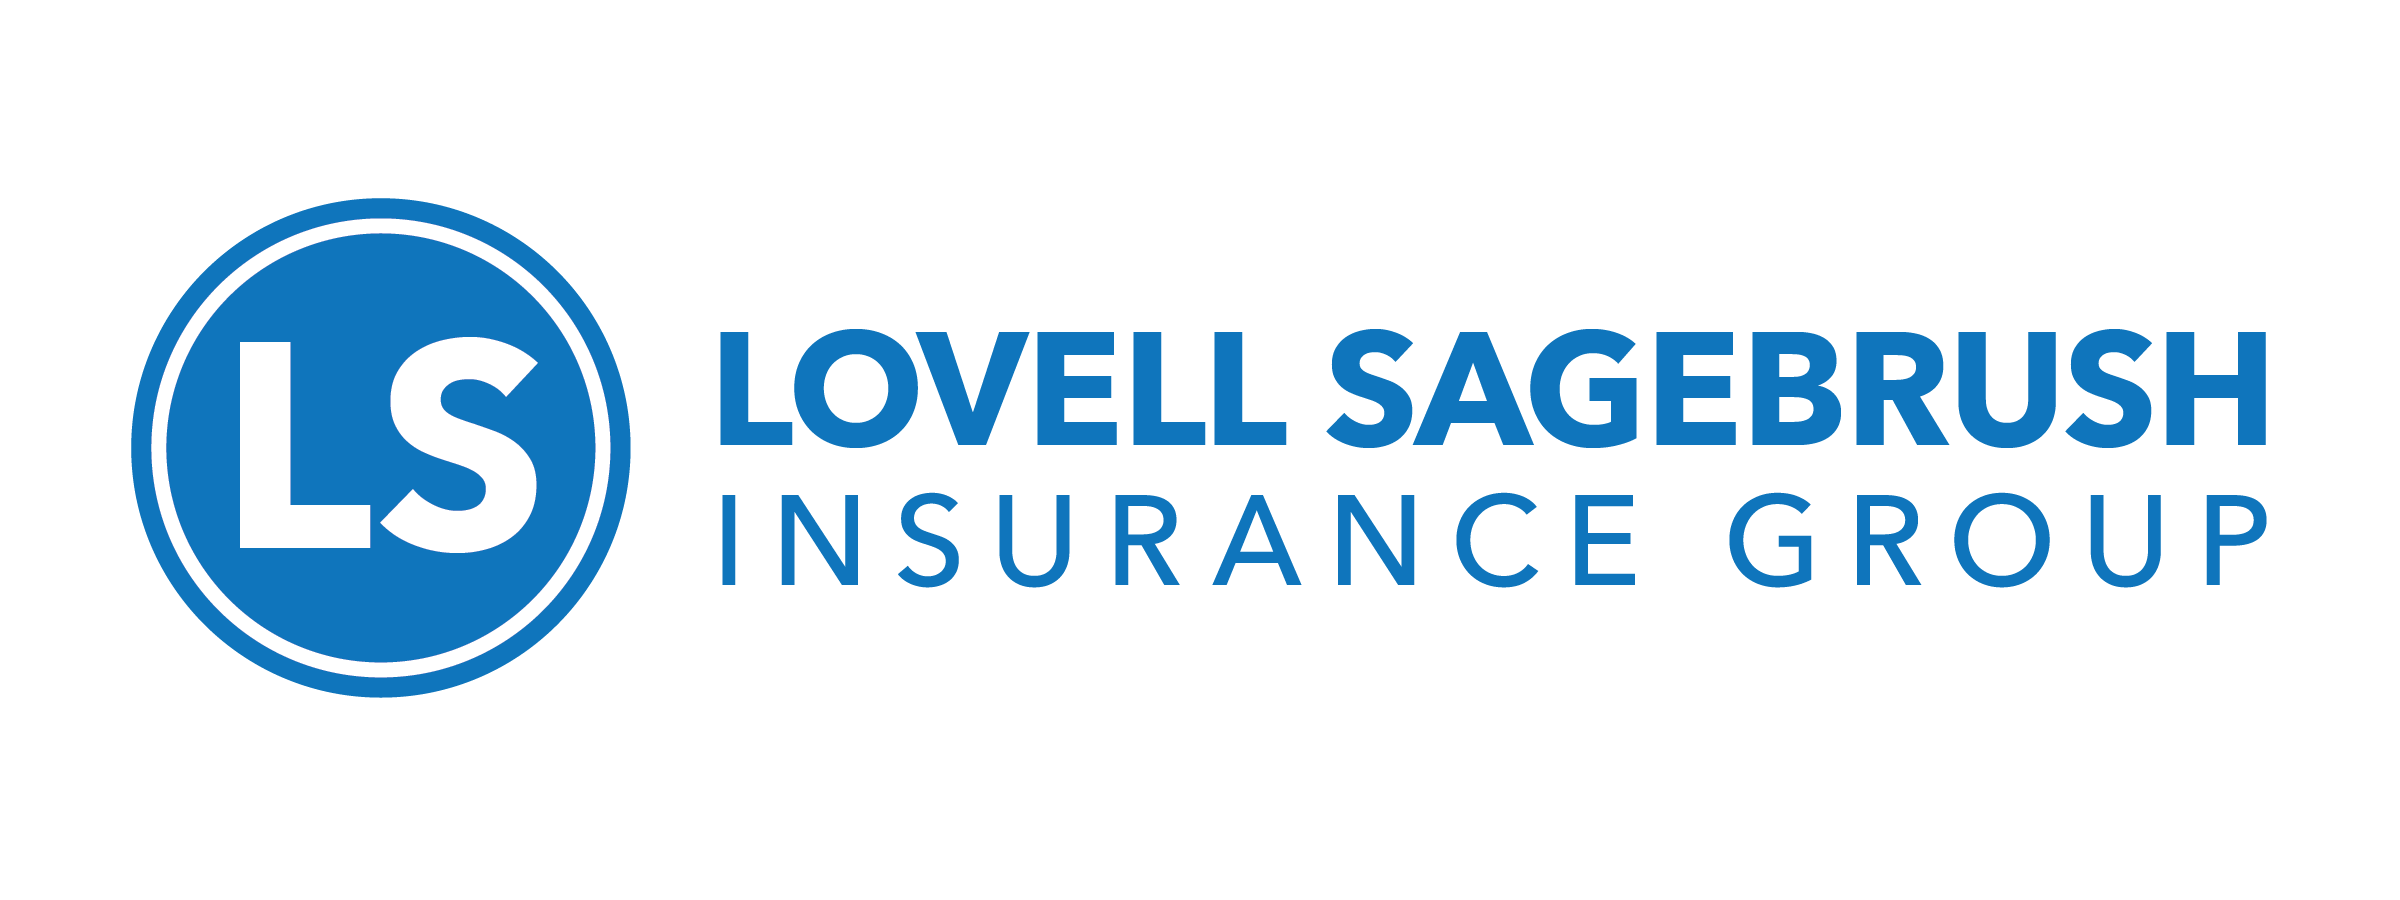 Home | lovell insurance group final revised 01 | Associated Builders & Contractors